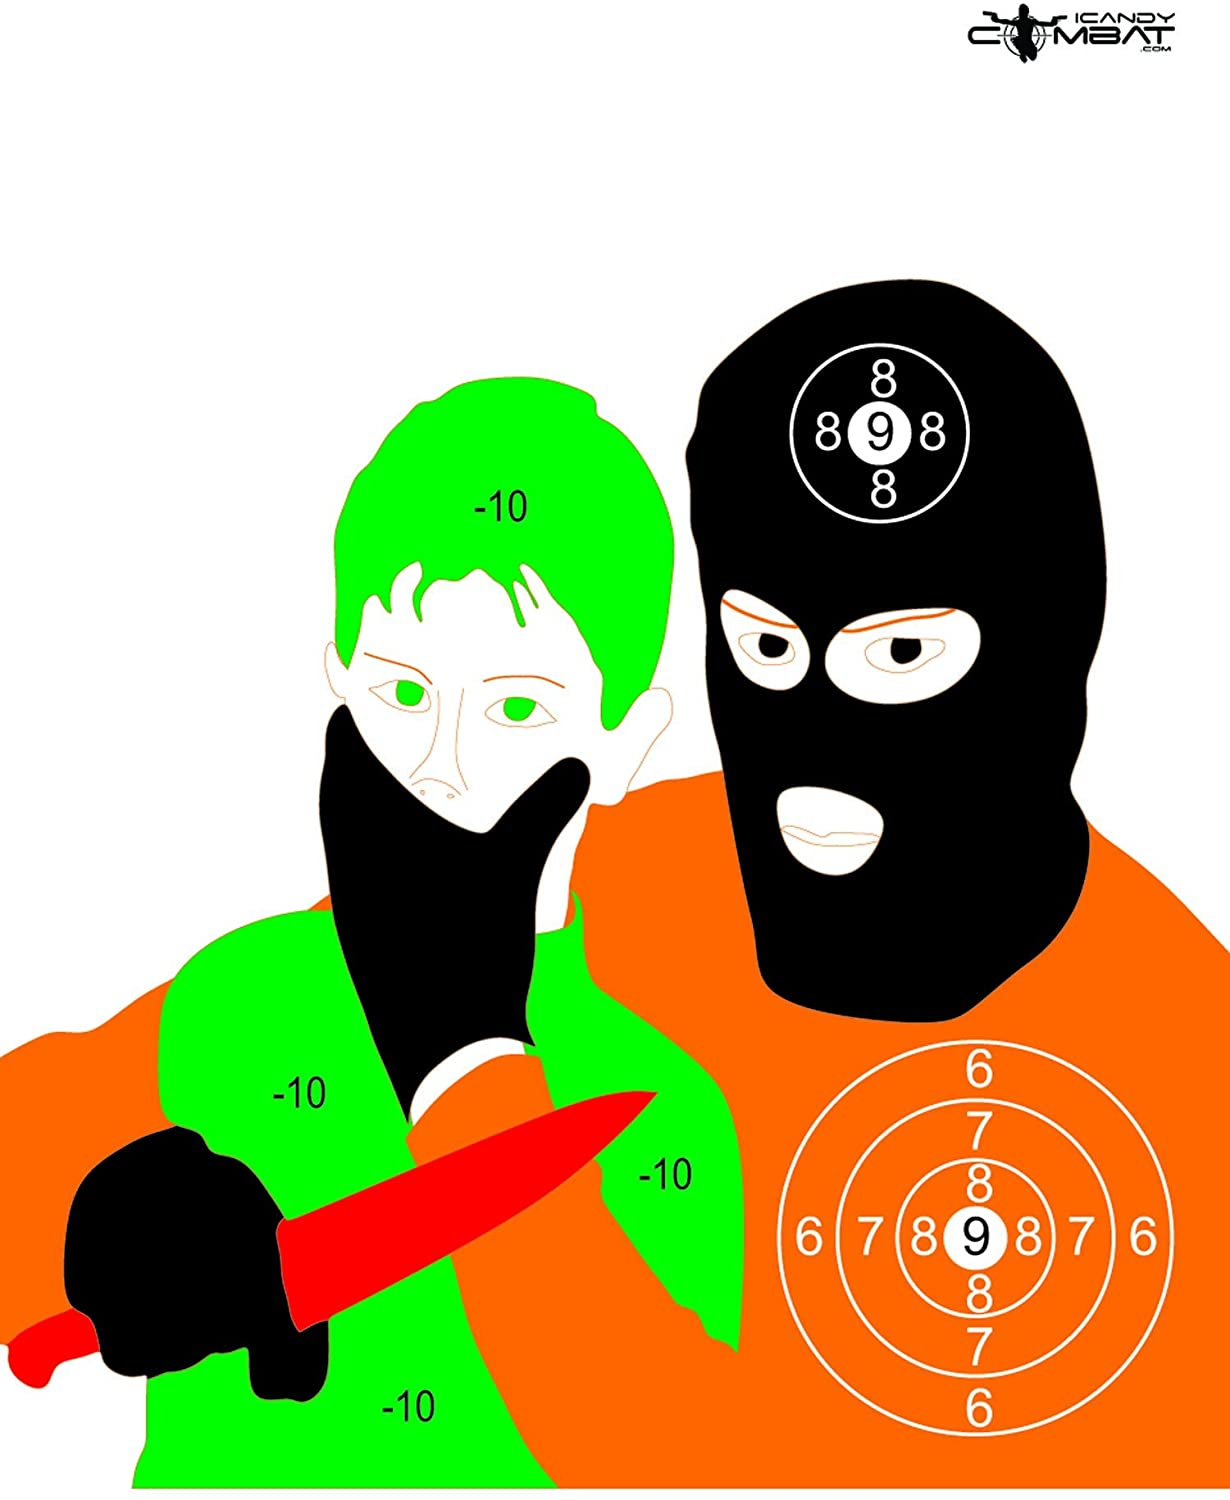 iCandy Combat Criminal with Knife Hostage Silhouette Targets - Police Military Training Target